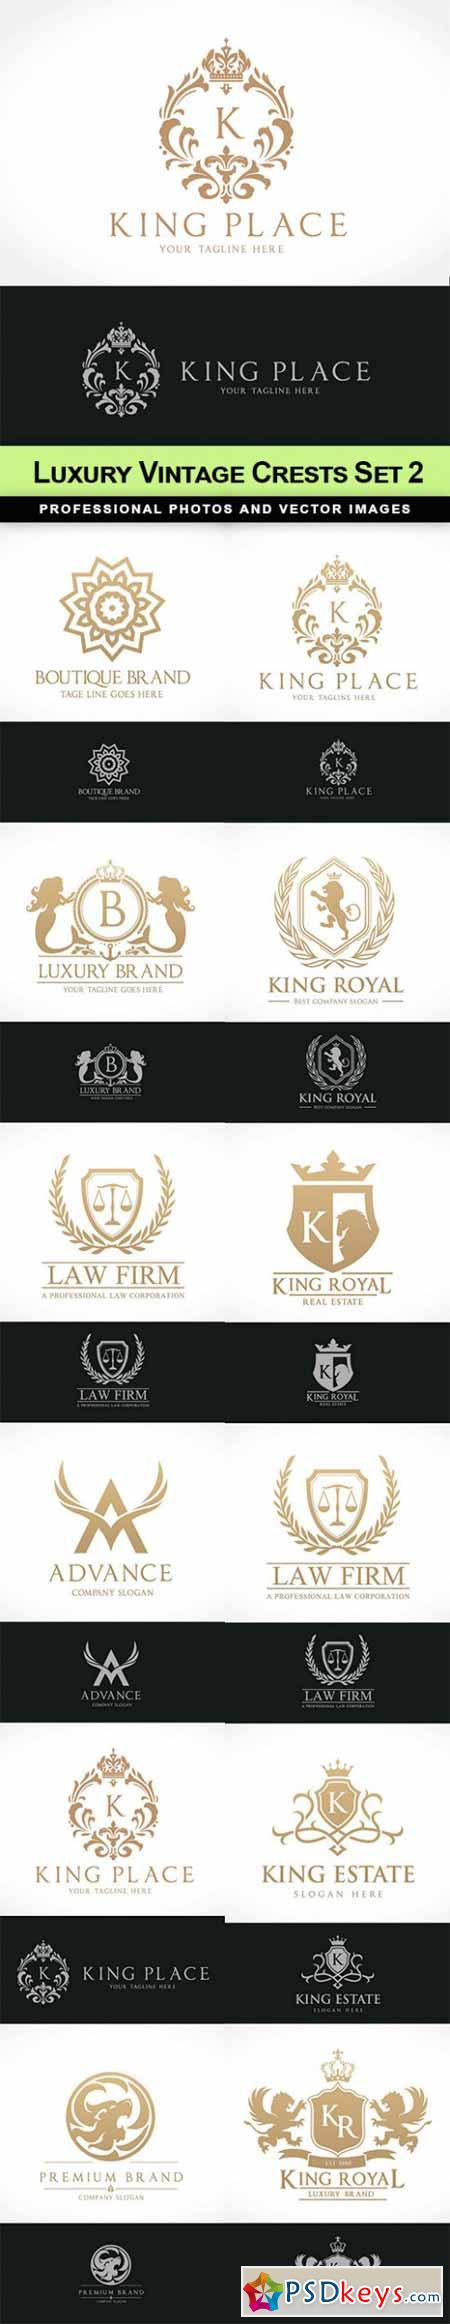 Luxury Vintage Crests Set 2 - 12 EPS